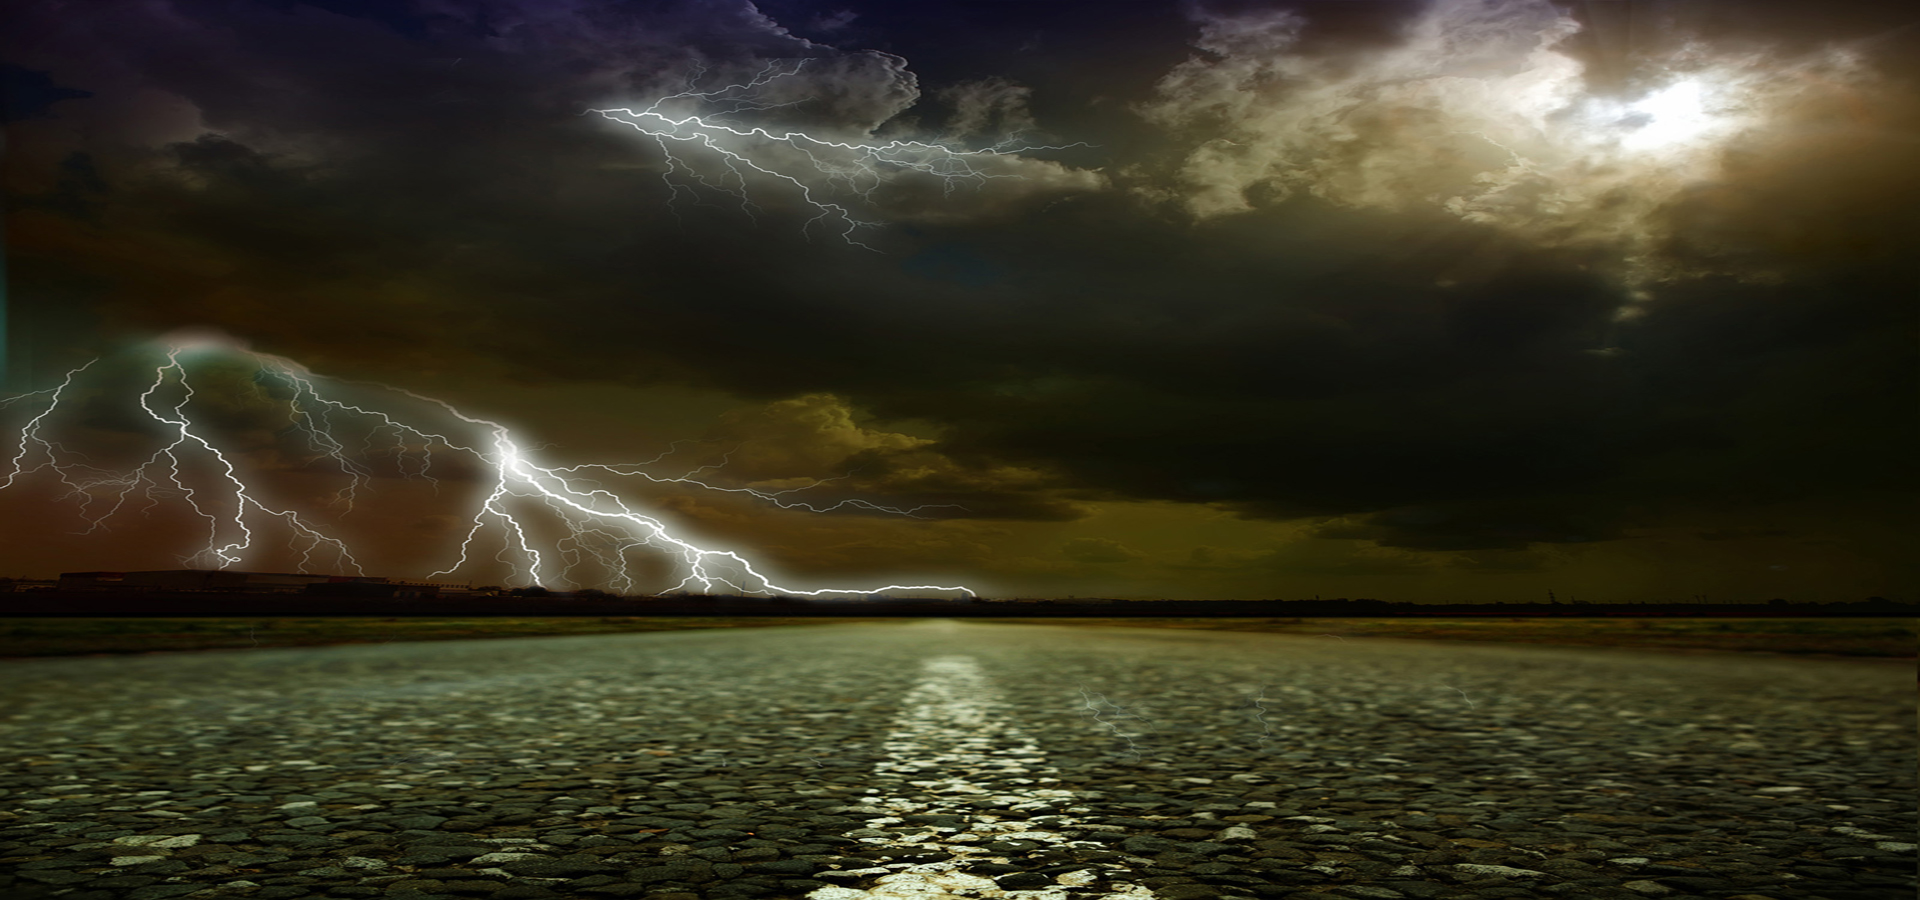 storm comes scenery  lightning  dark  clouds background